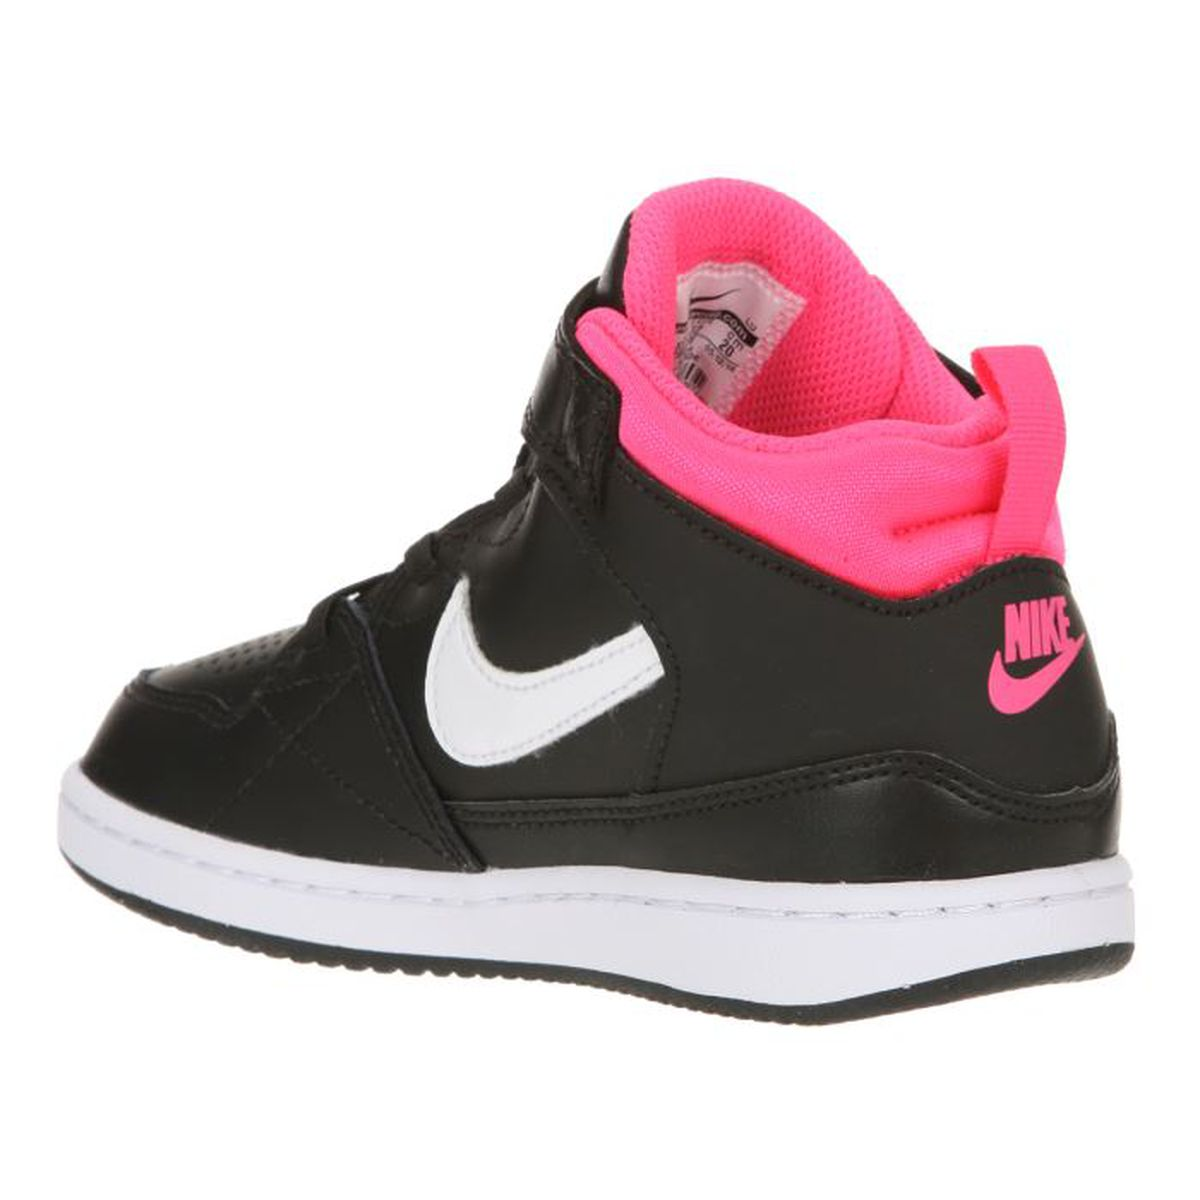 nike baskets priority mid ps enfant fille noir blanc rose achat vente basket cdiscount. Black Bedroom Furniture Sets. Home Design Ideas